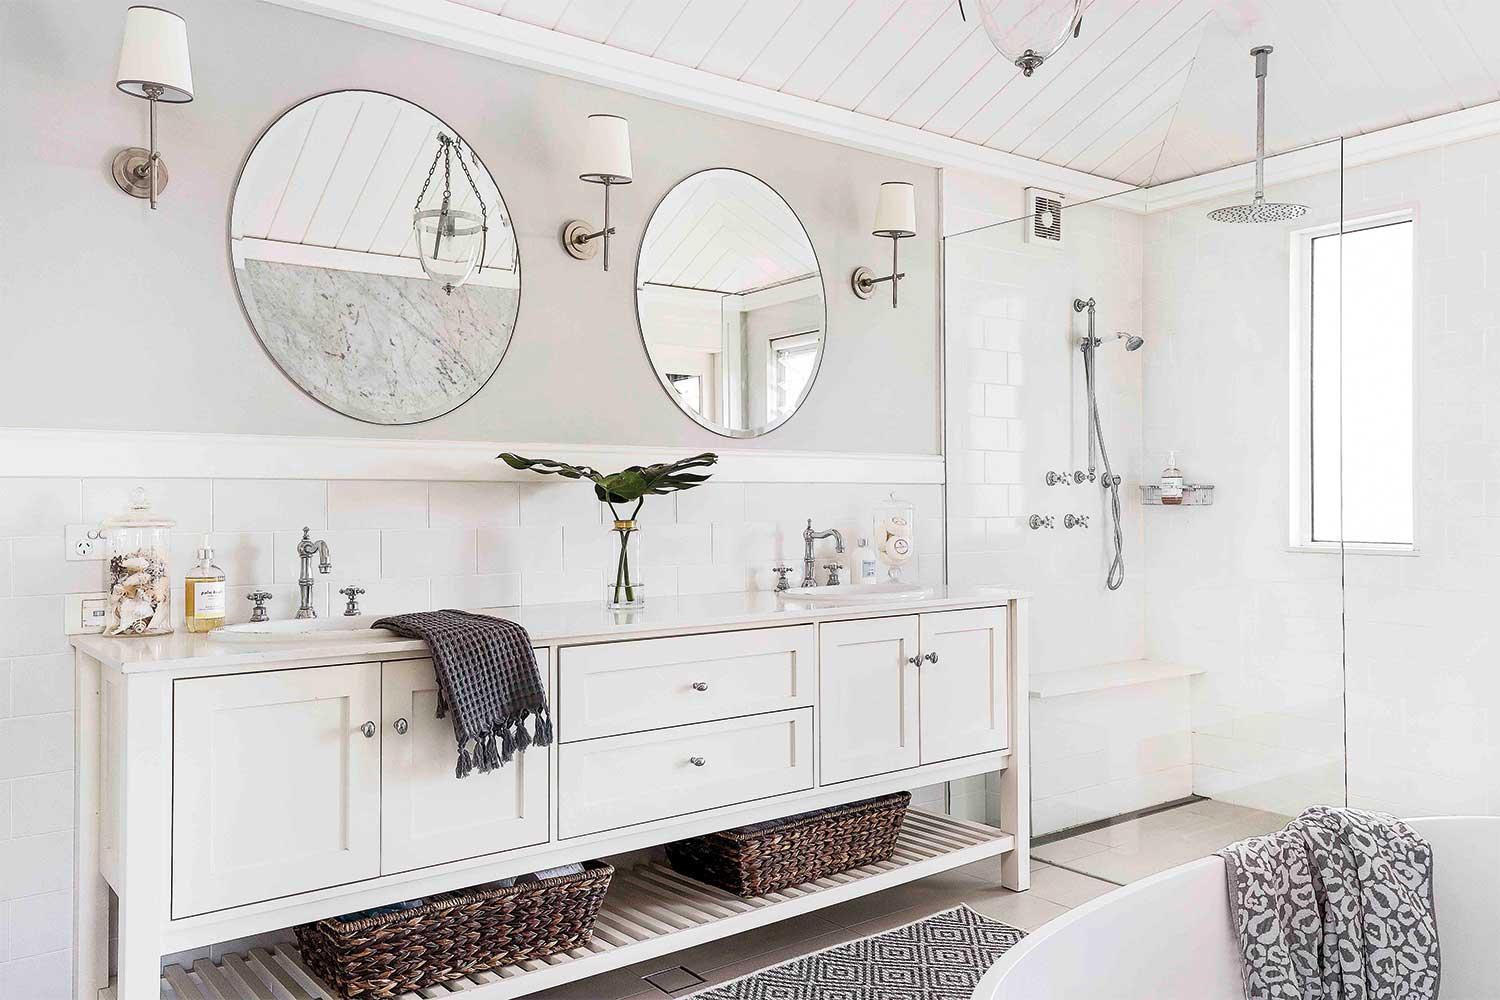 16 bathroom design ideas that work for a busy family